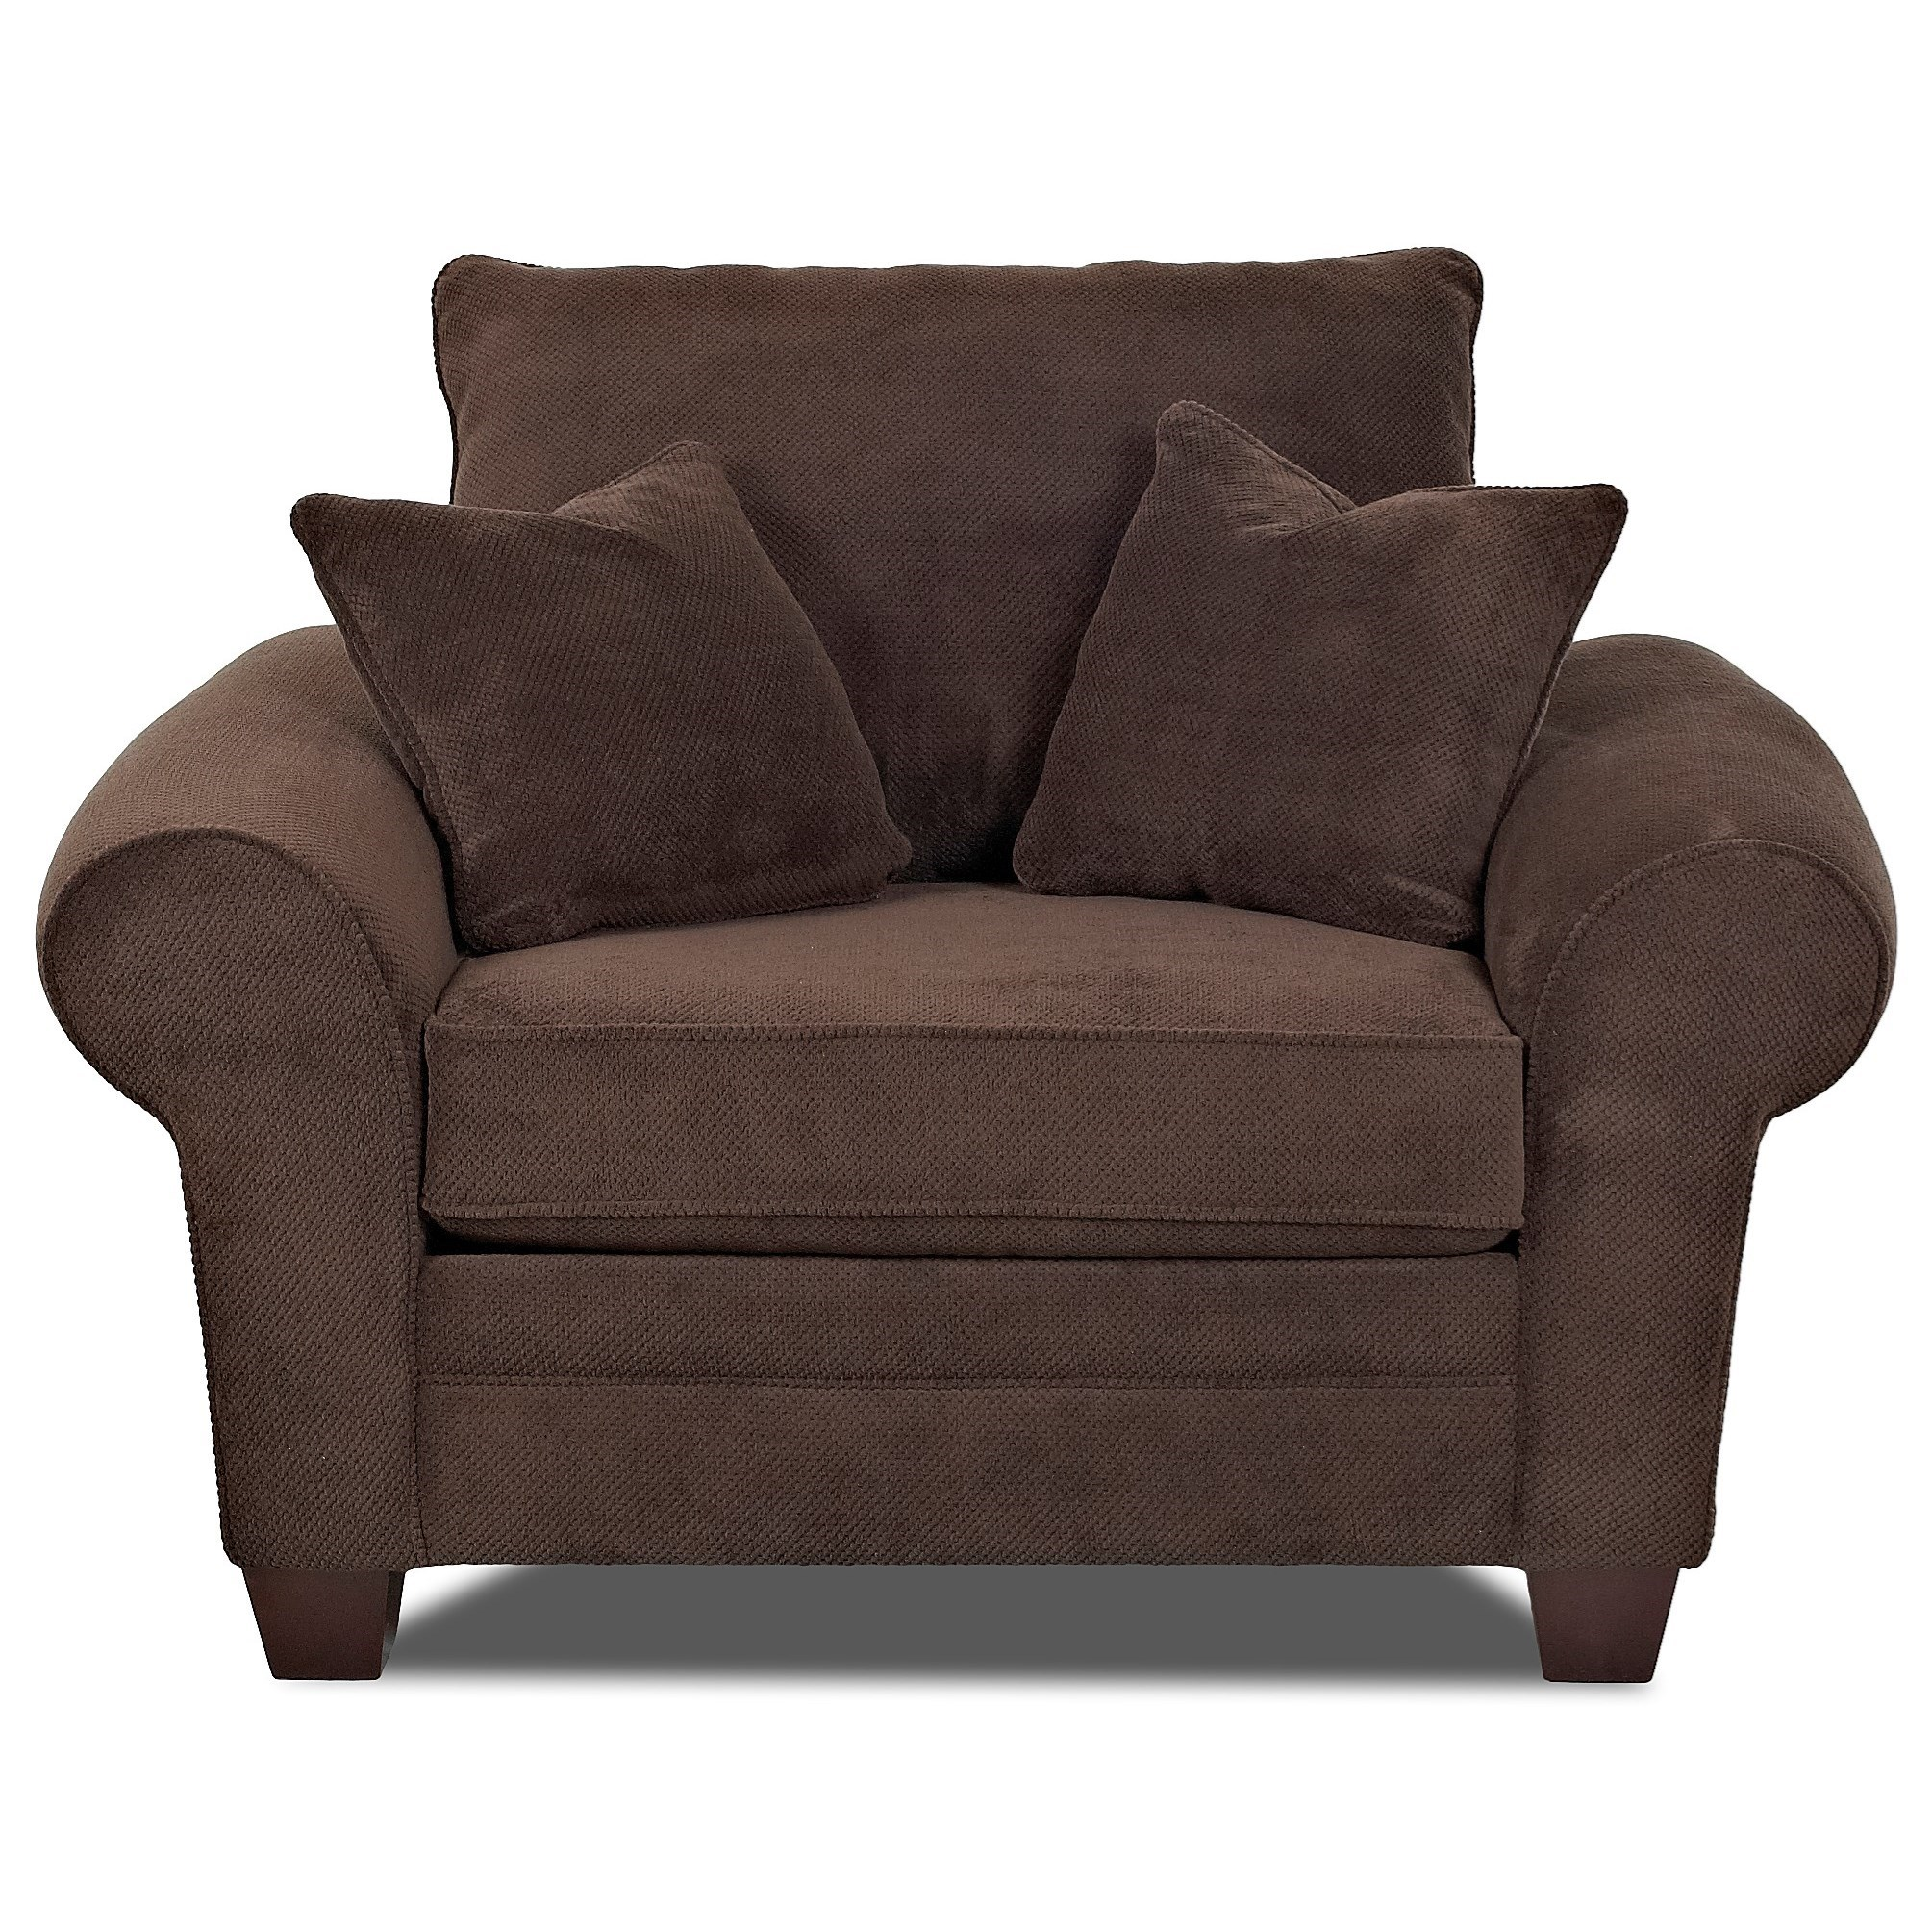 Klaussner Kazler Oversized Plush Chair with Pillows Dunk